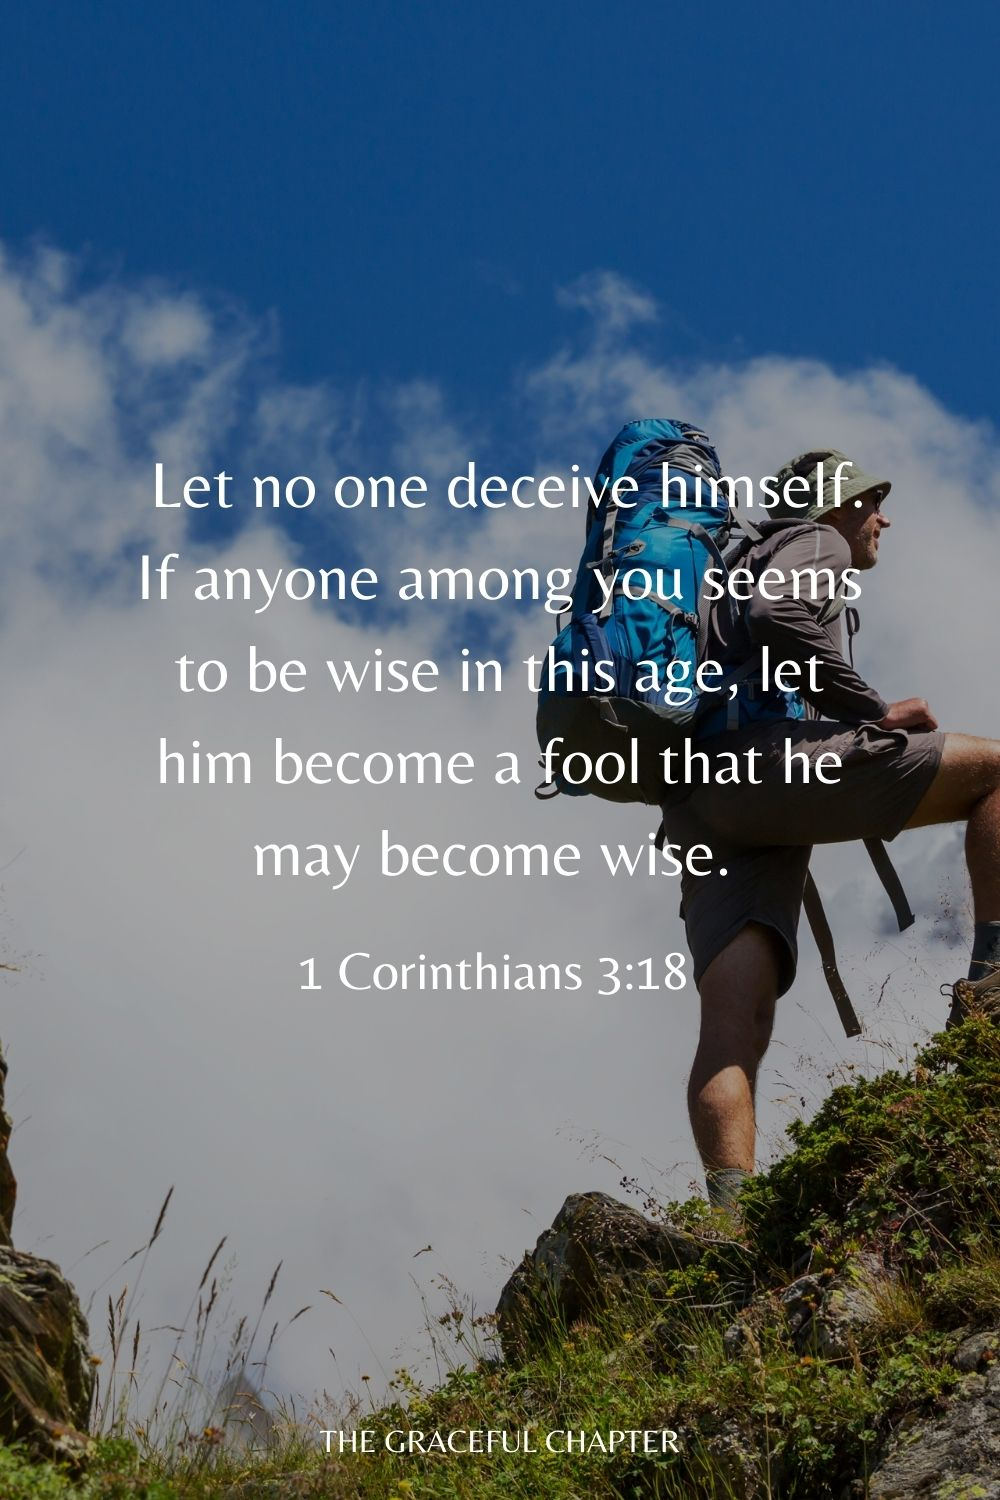 Let no one deceive himself. If anyone among you seems to be wise in this age, let him become a fool that he may become wise. 1 Corinthians 3:18